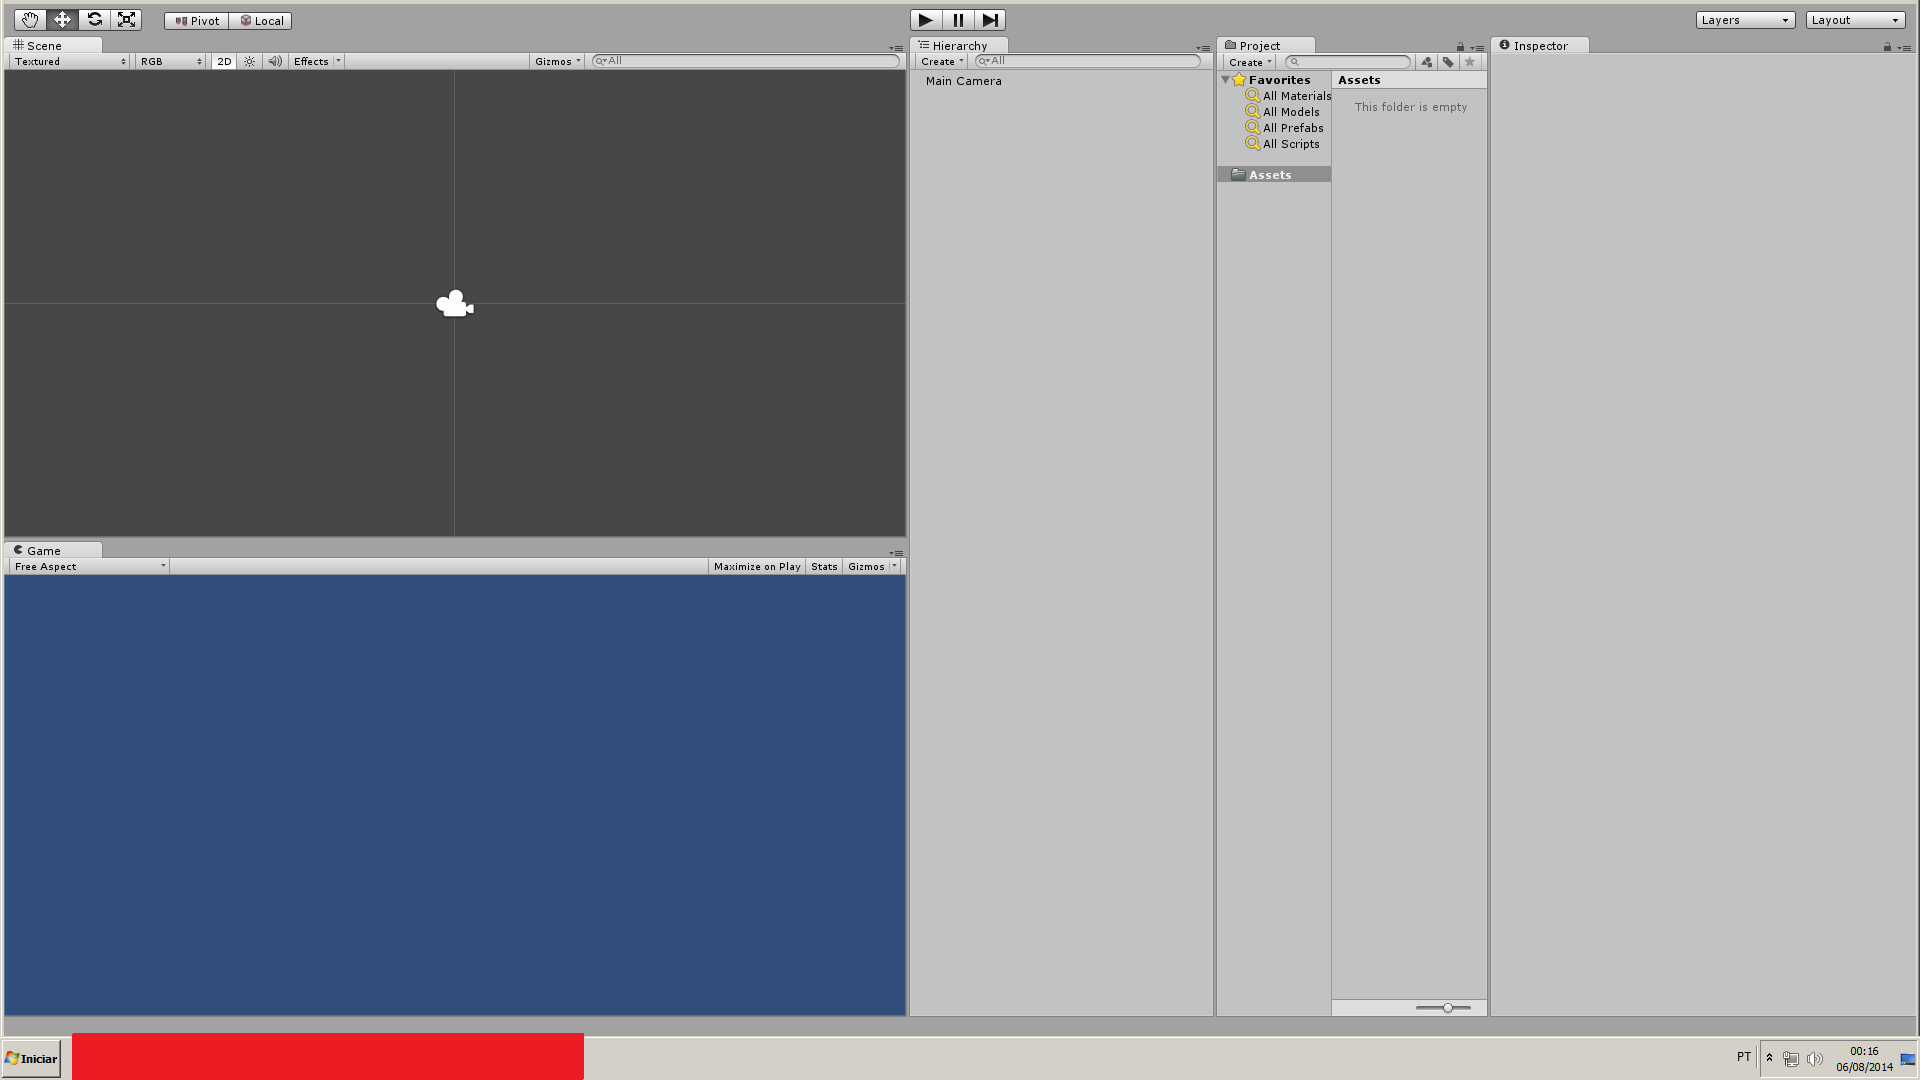 Just installed Unity, cannot see menu bar - Unity Answers